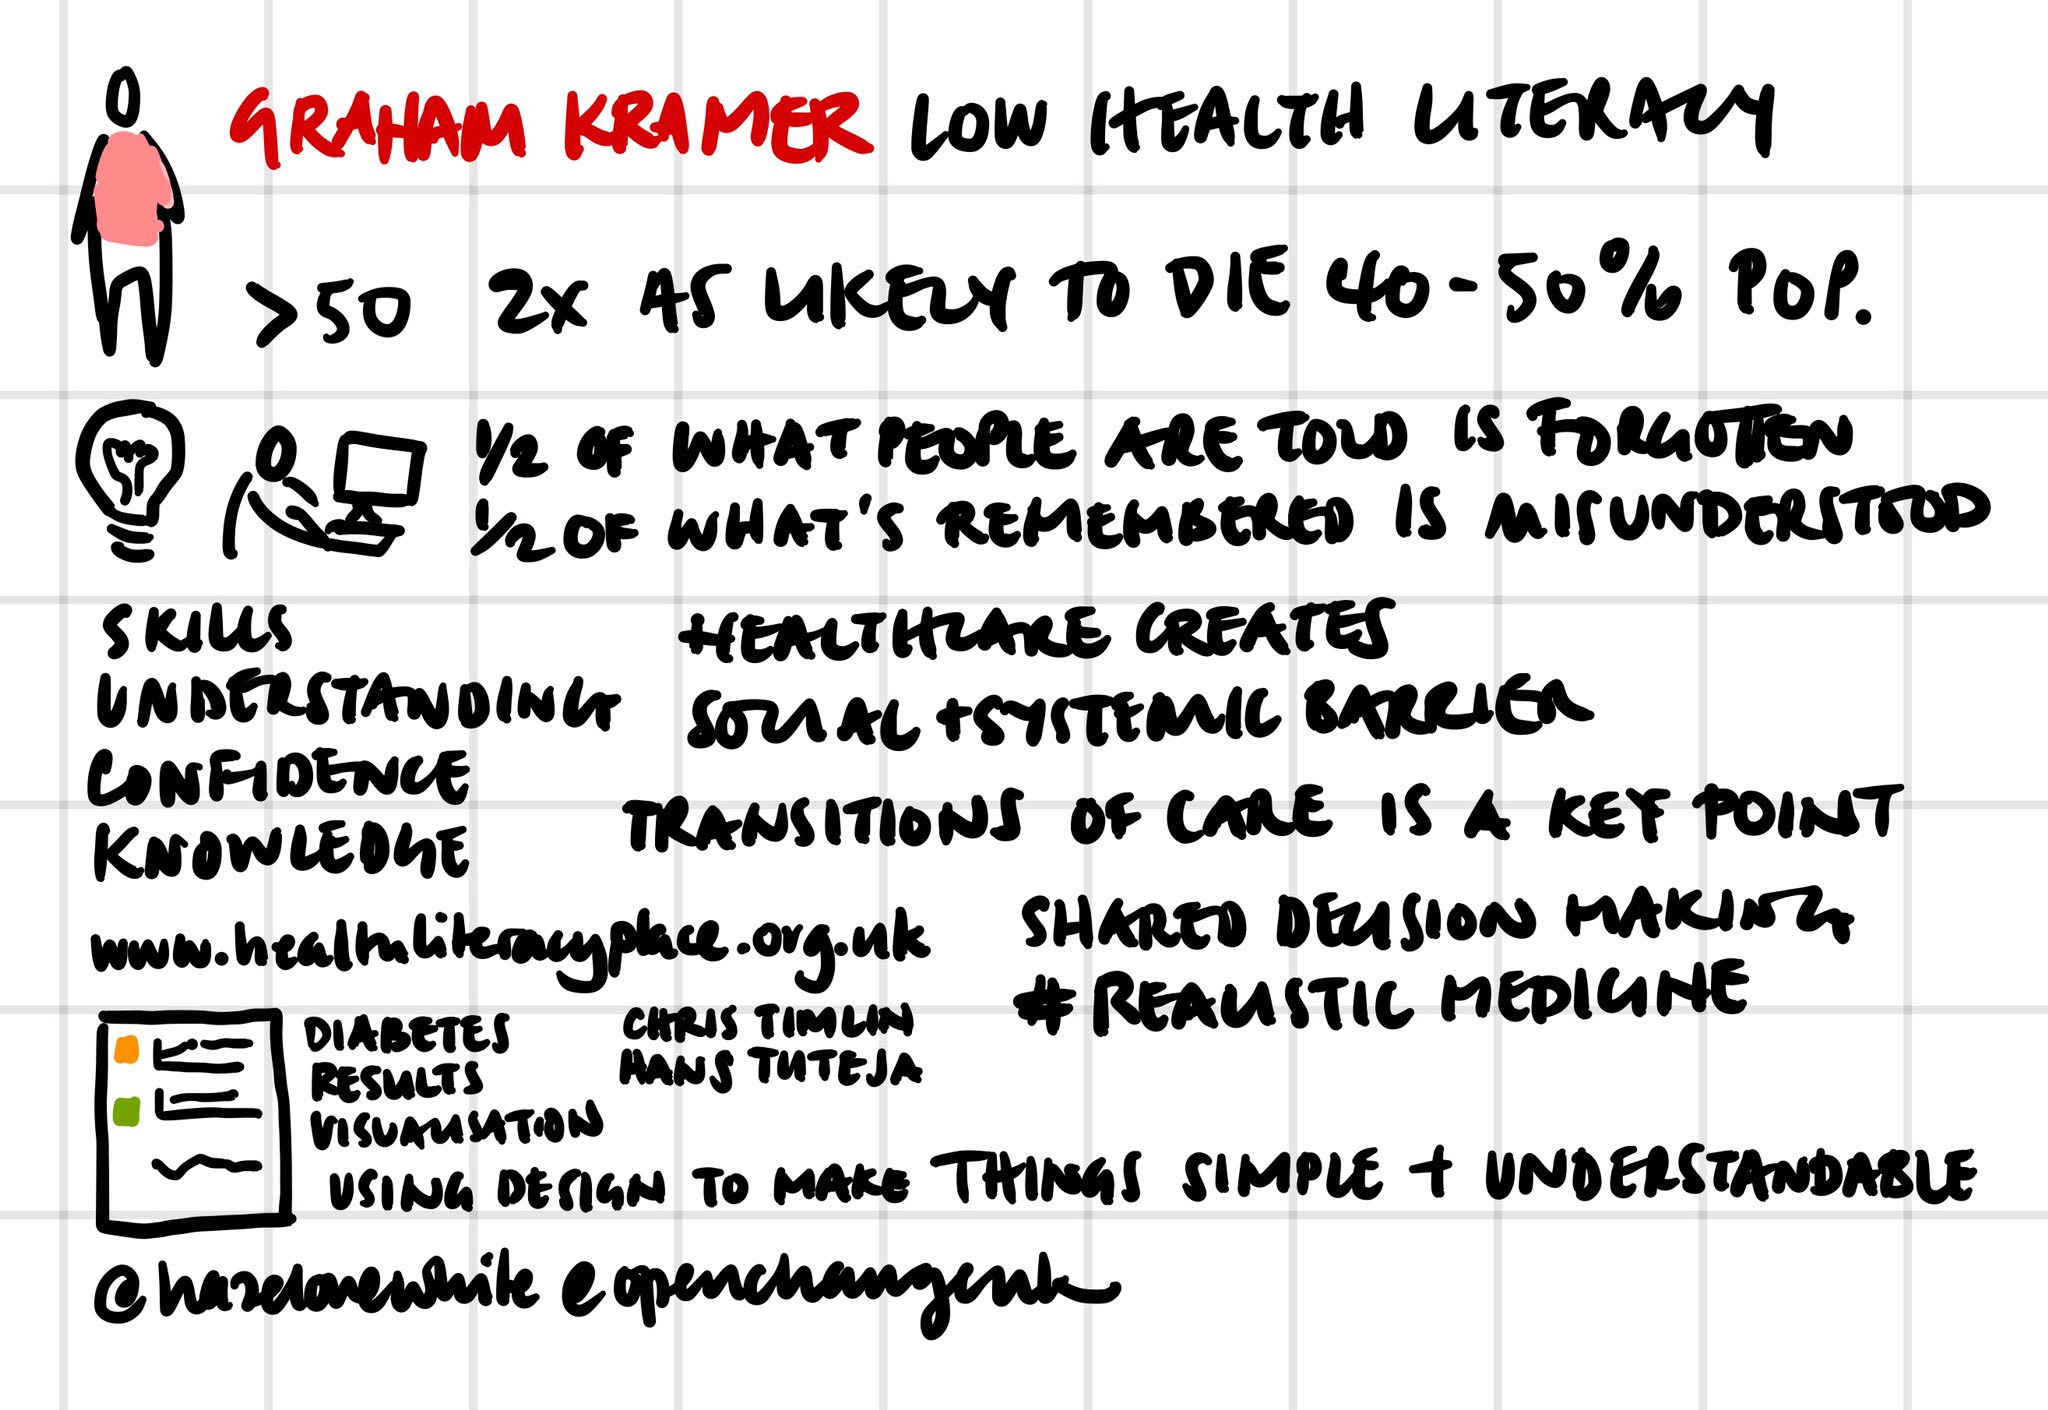 @KramerGraham at #healthlitdiscovery on the role of design in making health info simple and easy to understand https://t.co/Qv6qbBsneo